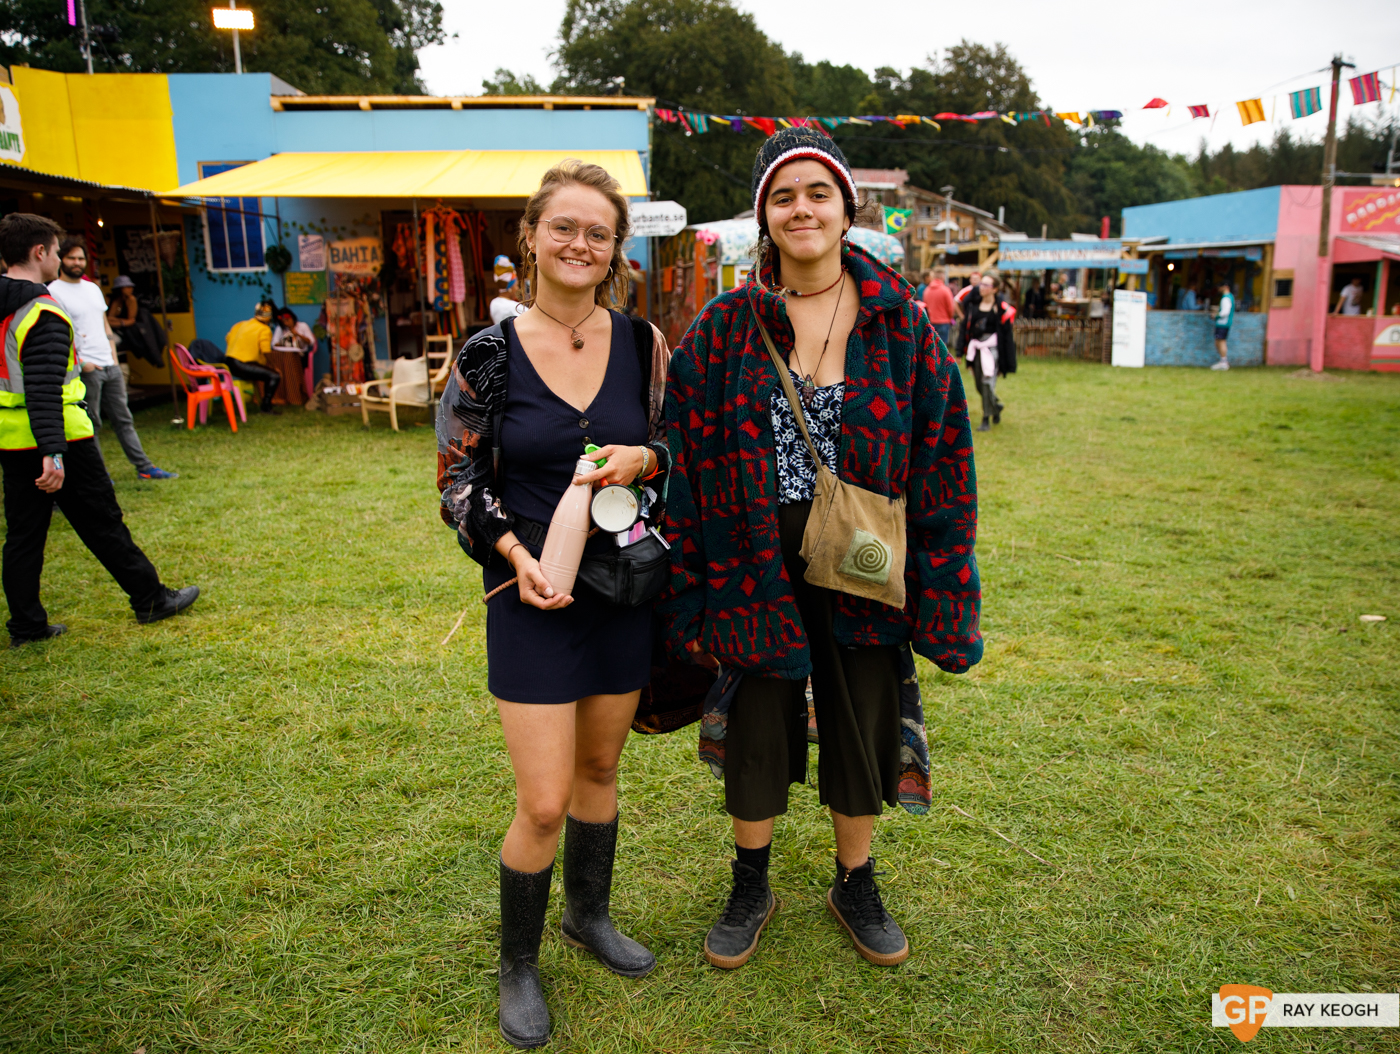 Humans Of Electric Picnic – Electric Picnic – Ray Keogh-11